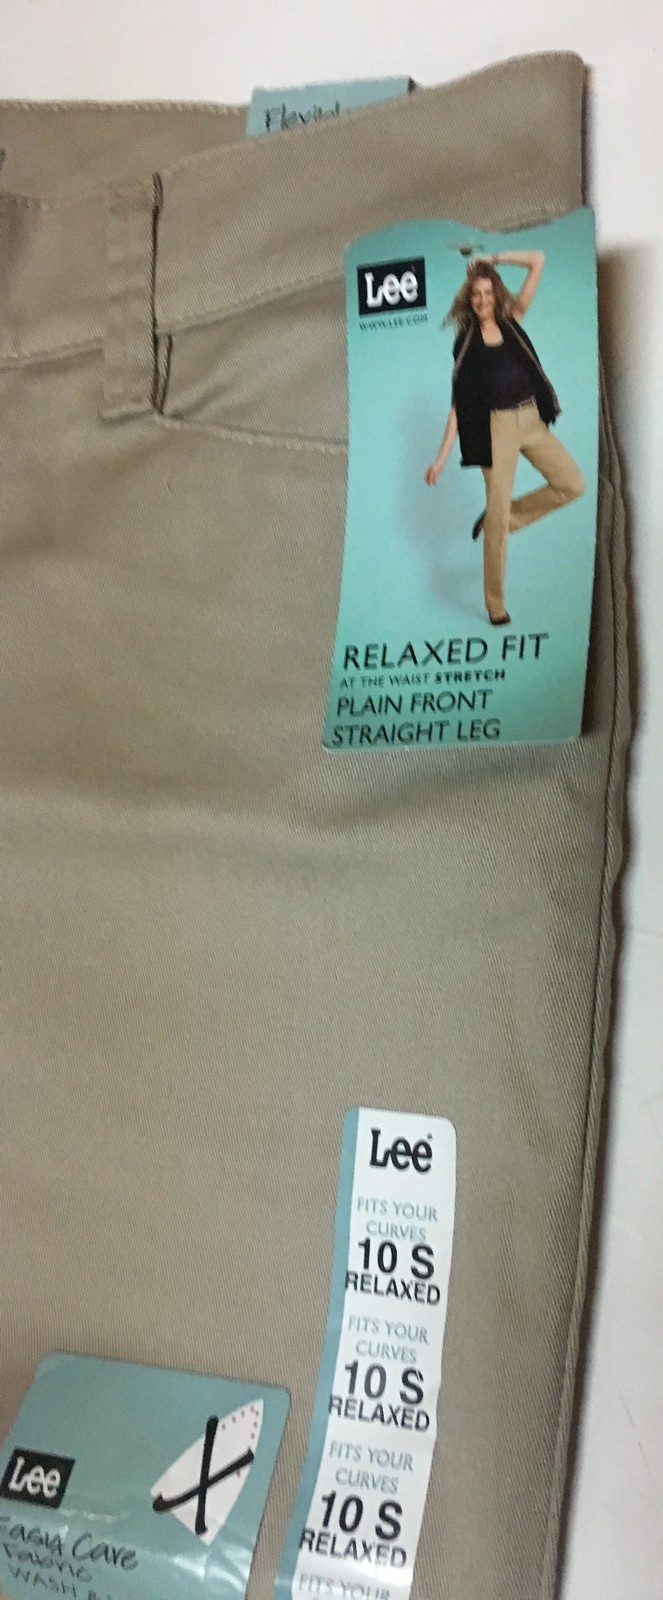 Lee Relaxed Fit Stretch Beige Pants Sz 10 Short Straight Leg NWT image 7